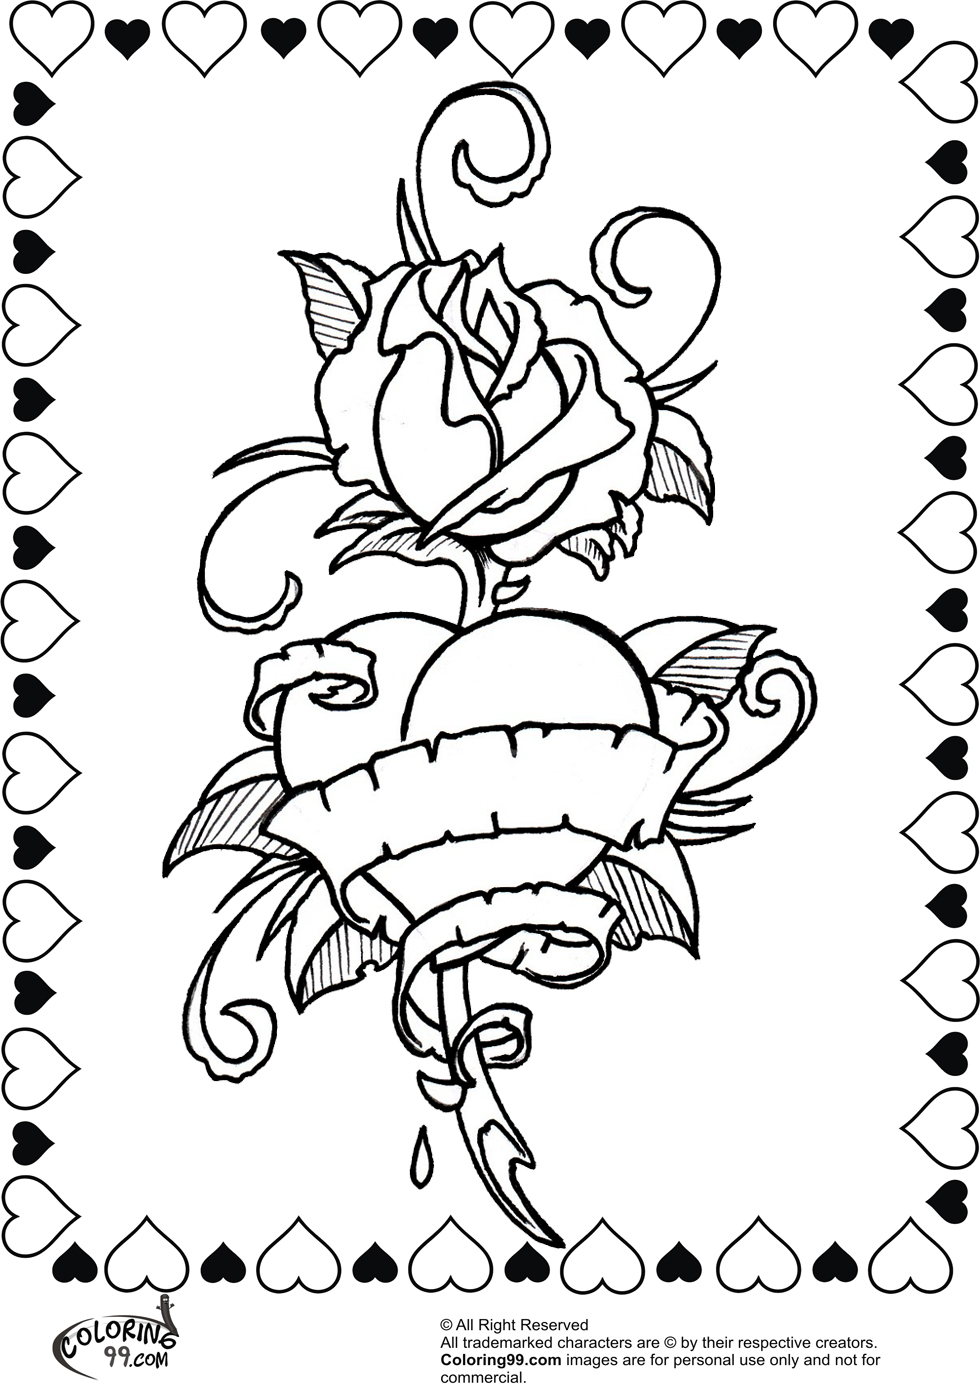 Rose With A Heart Drawing at GetDrawings.com | Free for personal use ...